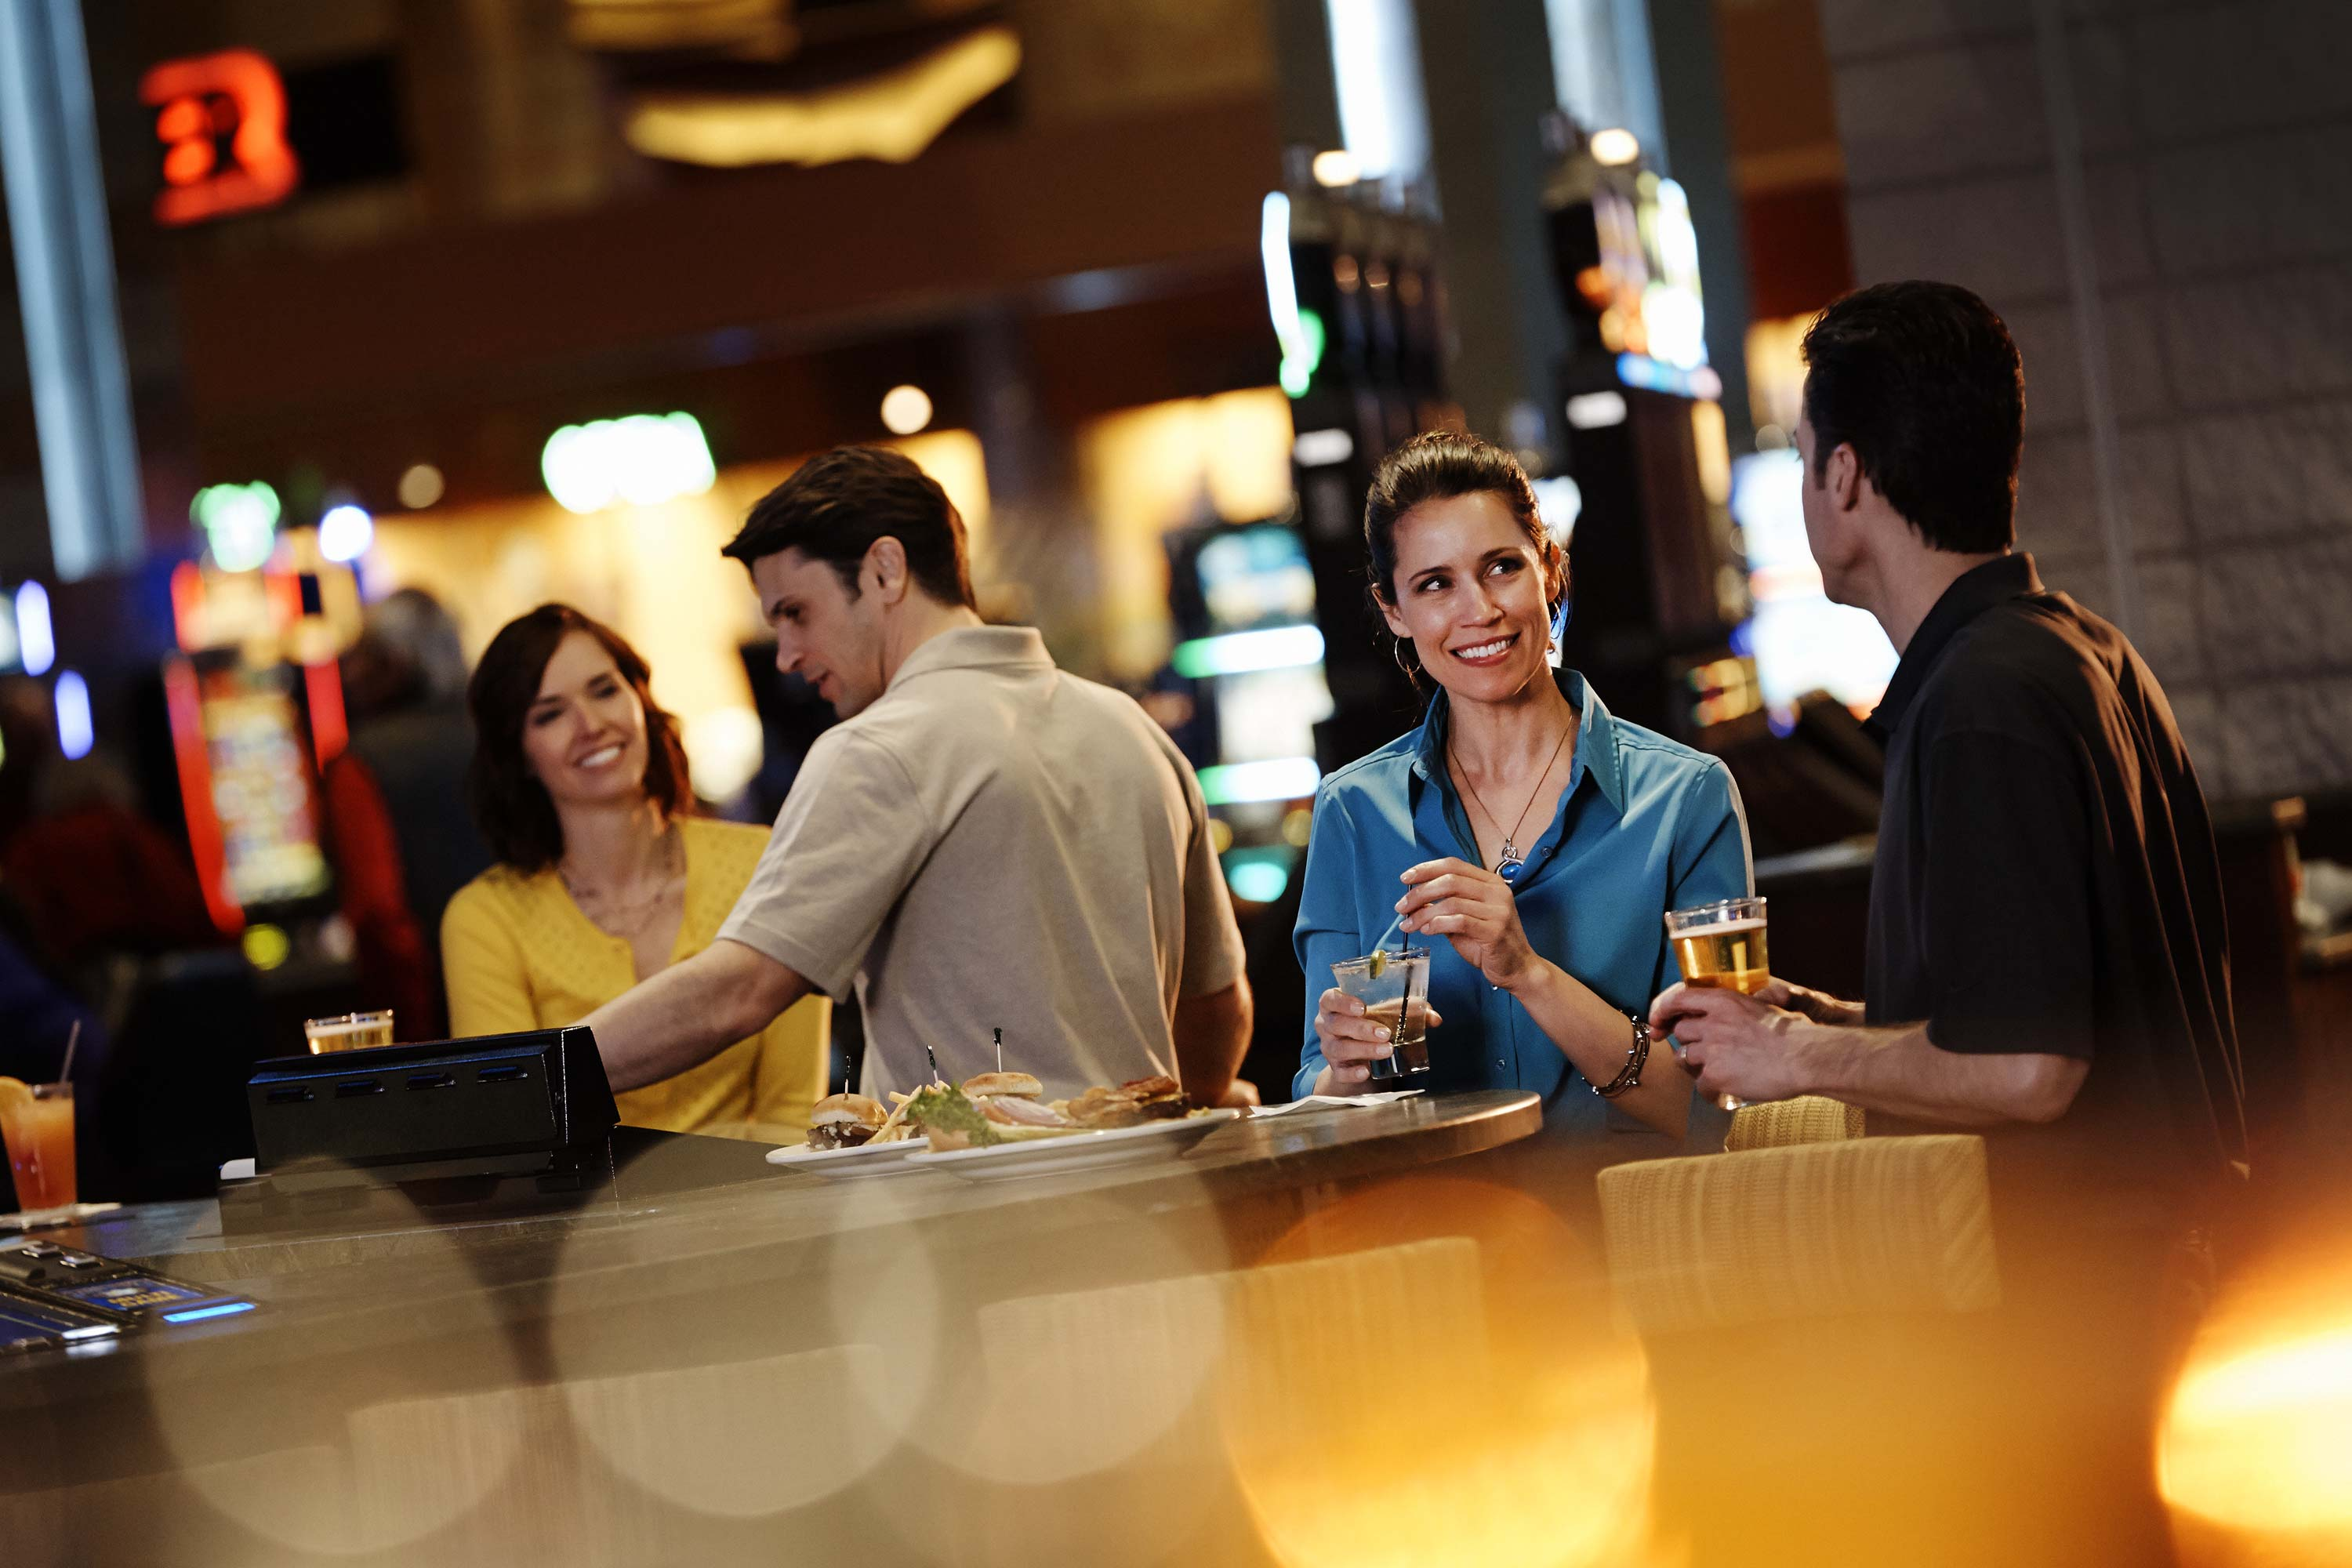 John Nienhuis | Wisconsin Casino & Gaming Photographer | Advertising  Photography